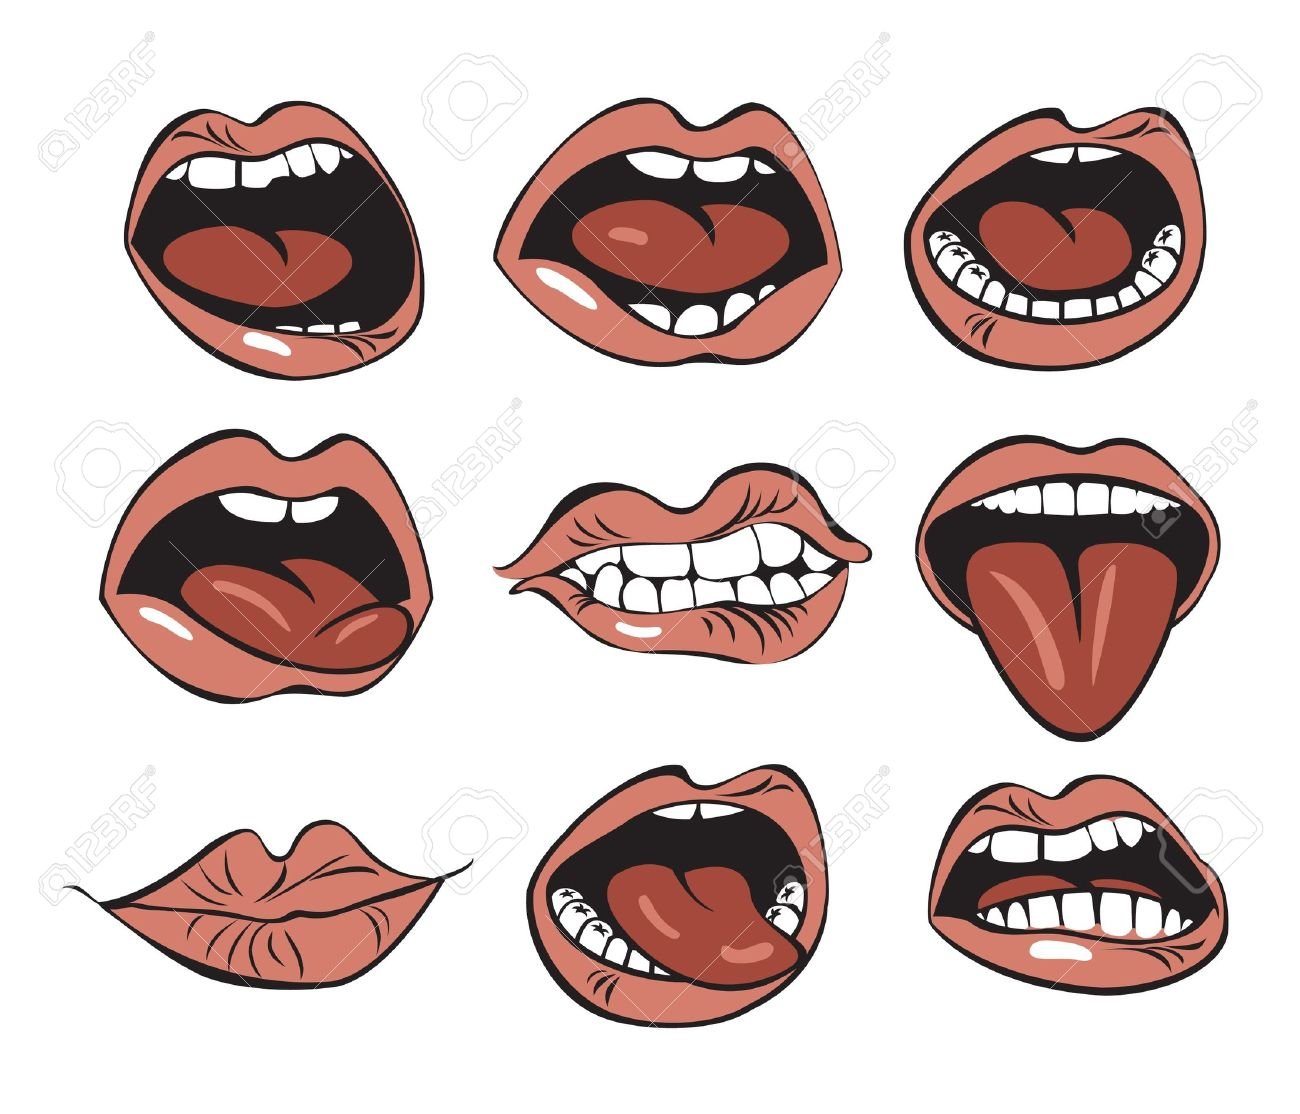 Lips clipart funny Funny Lips Lips Clipart Clipart